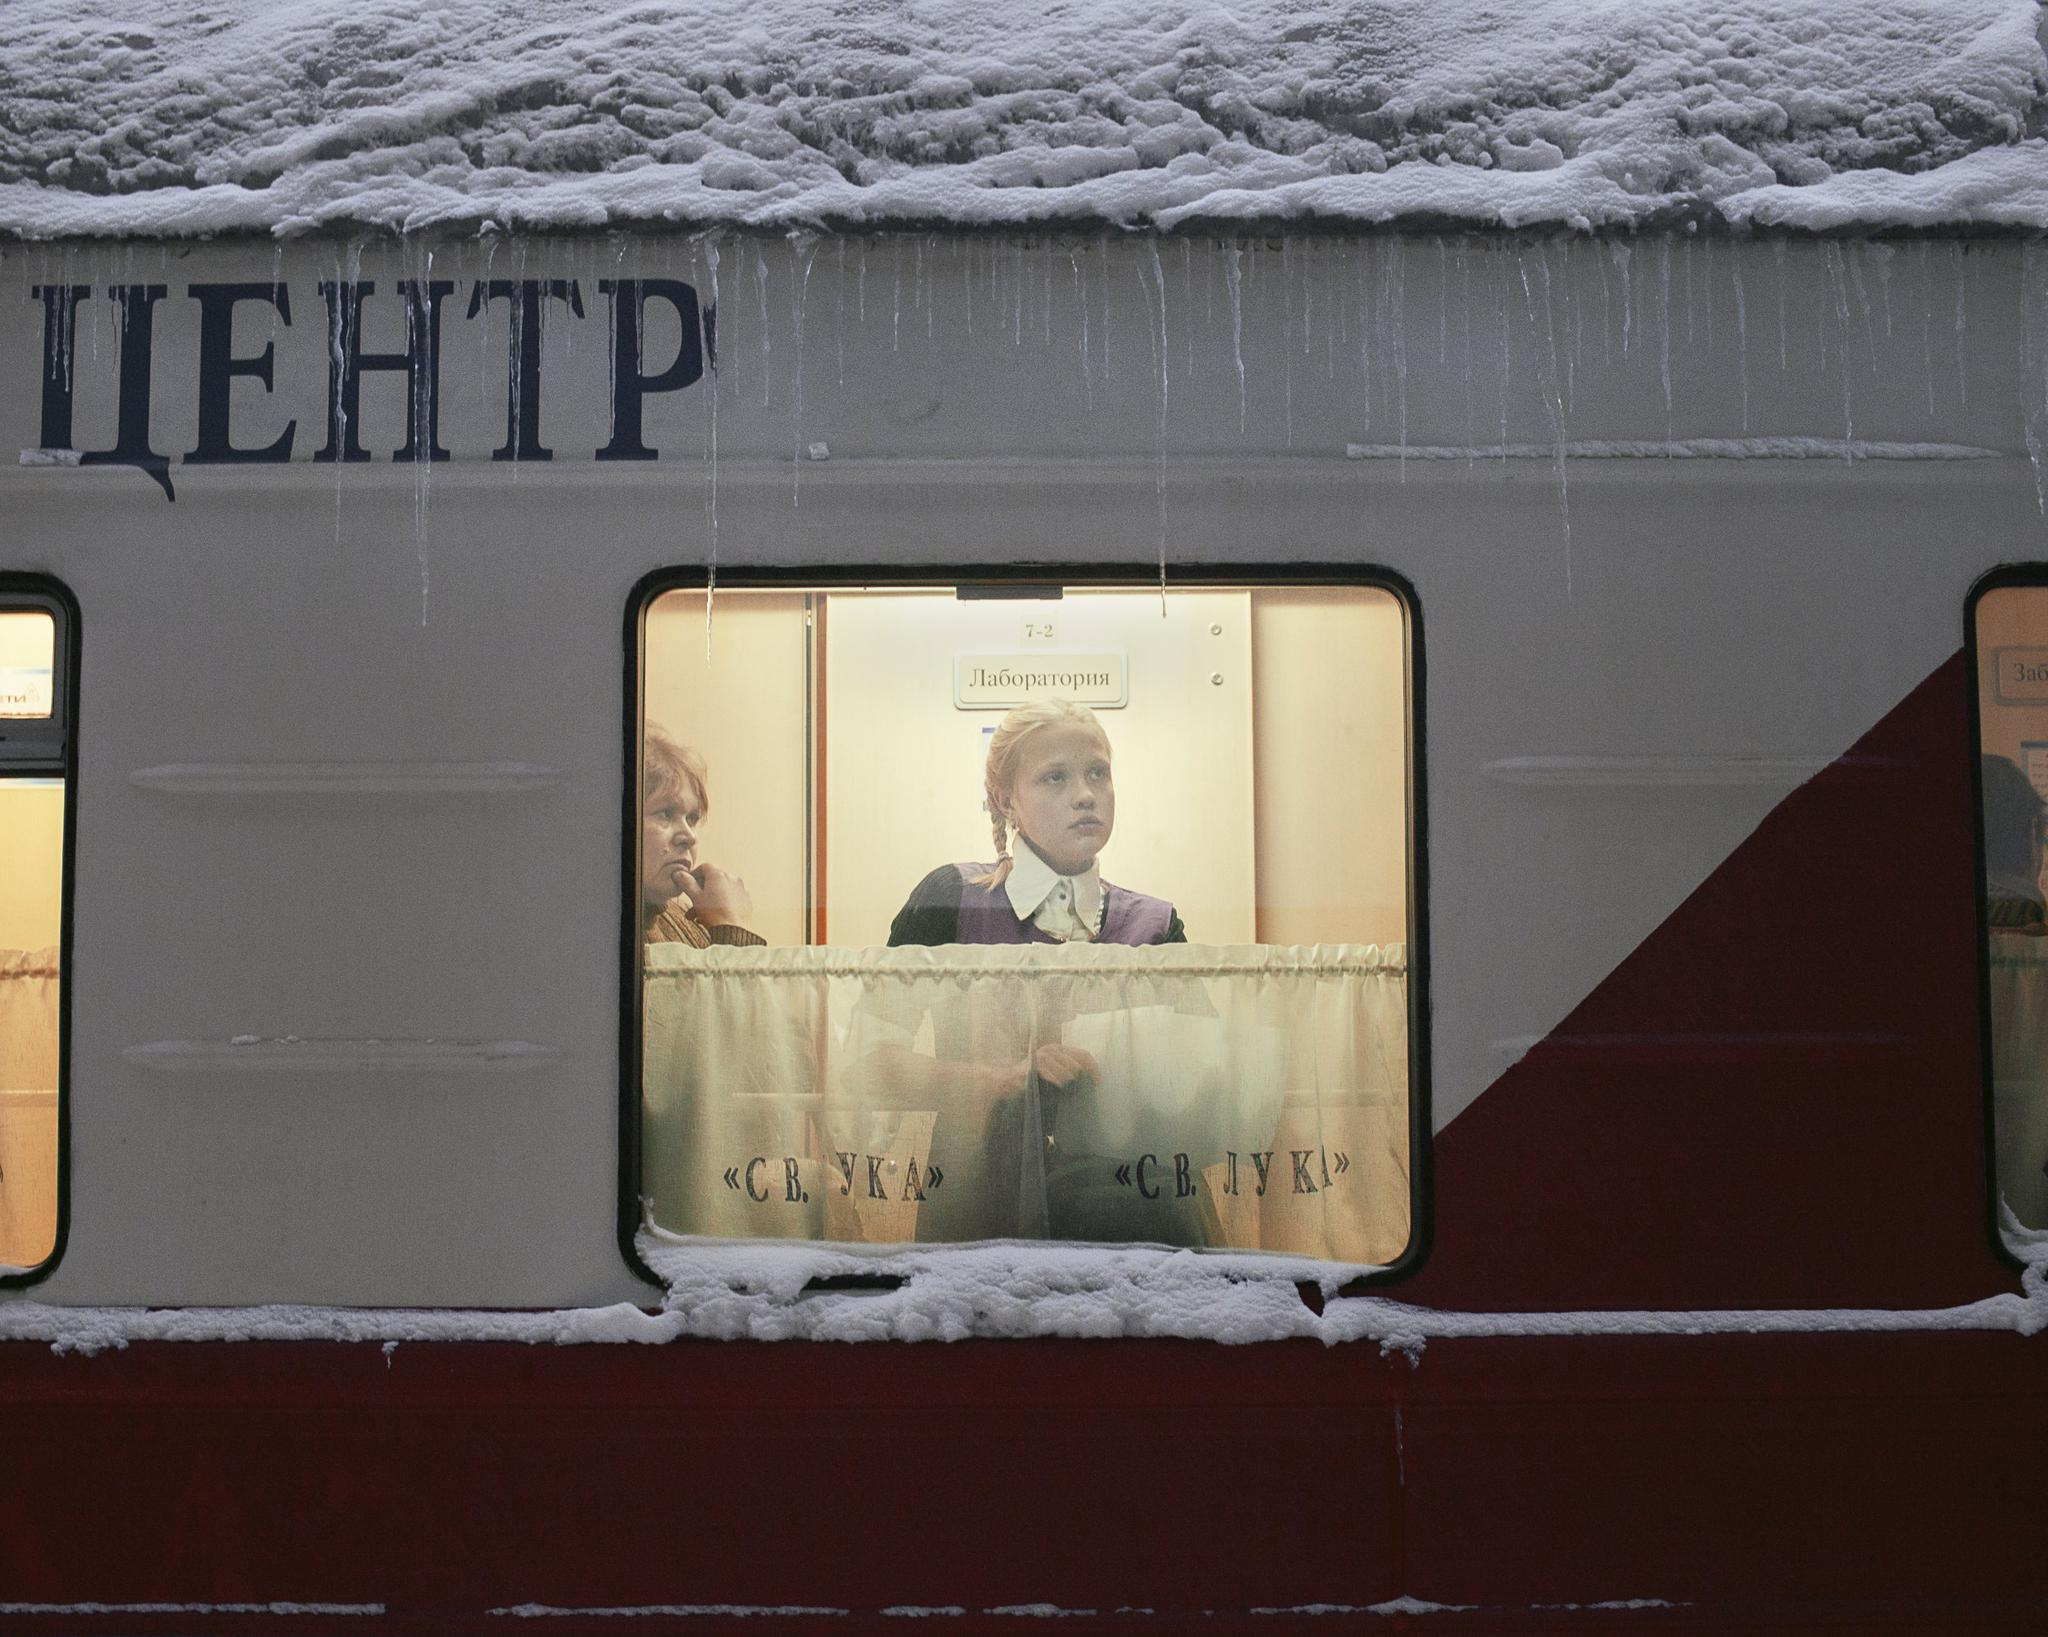 Patients wait for medical treatment and laboratory results on the Saint Lukas medical train, which stopped in the remote town of Kuragino, Russia, on November 13, 2016. The train comes about once a year to each town on its route.